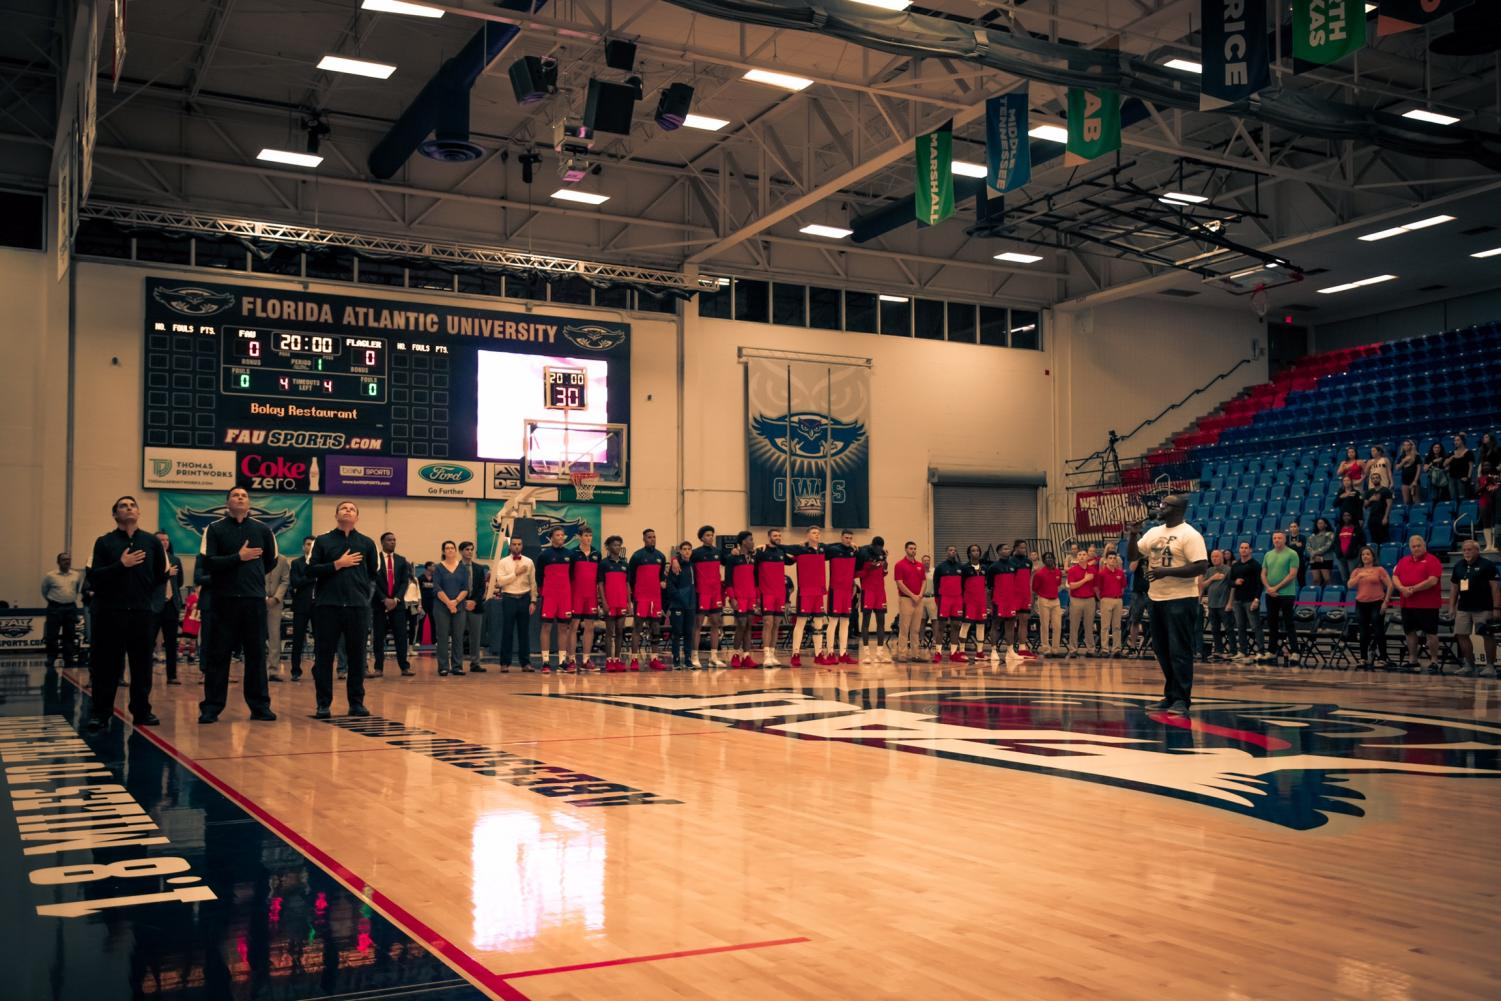 With the win yesterday over Palm Beach Atlantic, the Owls are 2-0 on their home floor. Photo by Michael Hoyos.